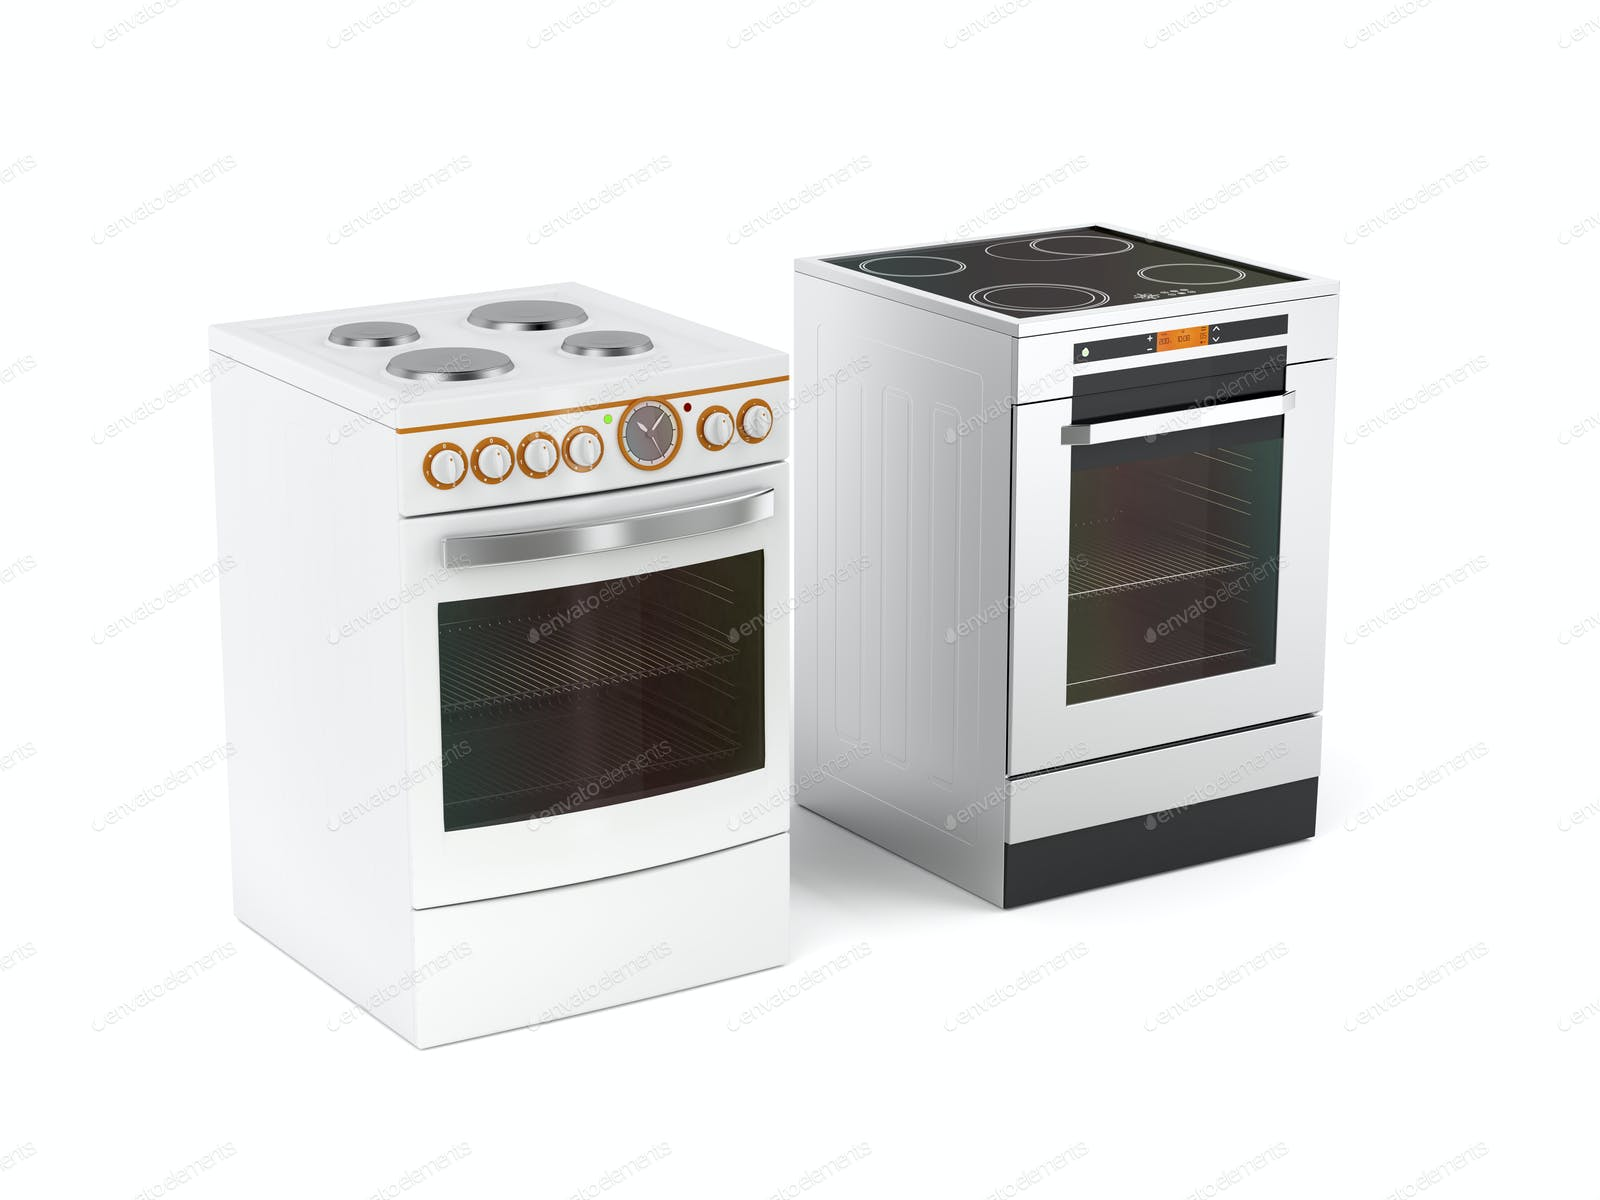 Two electric stoves photo by magraphics on Envato Elements